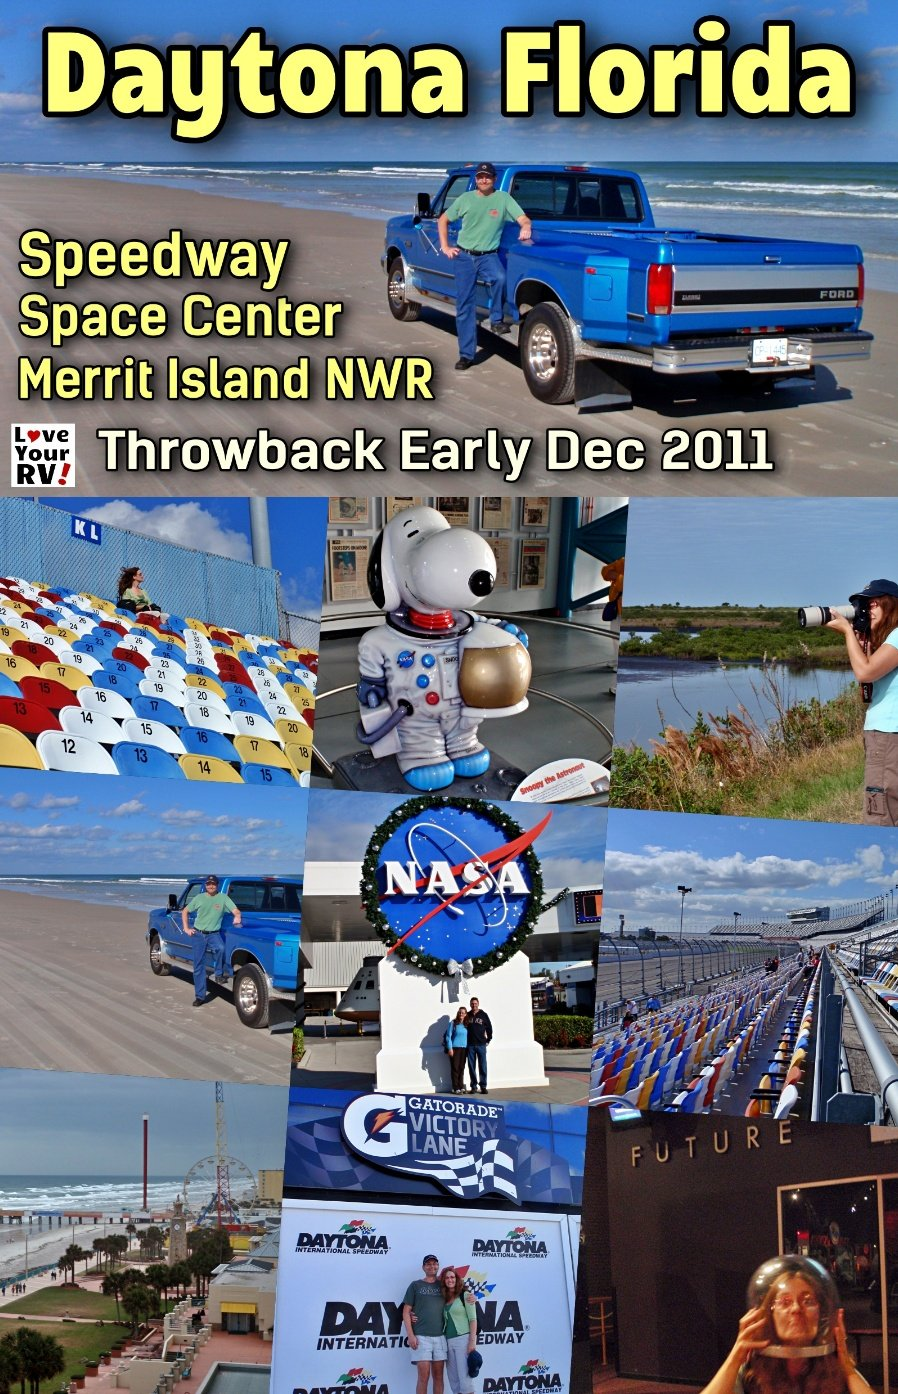 Daytona Beach, Kennedy Space Center & Merritt Island NWR - Throwback 2011